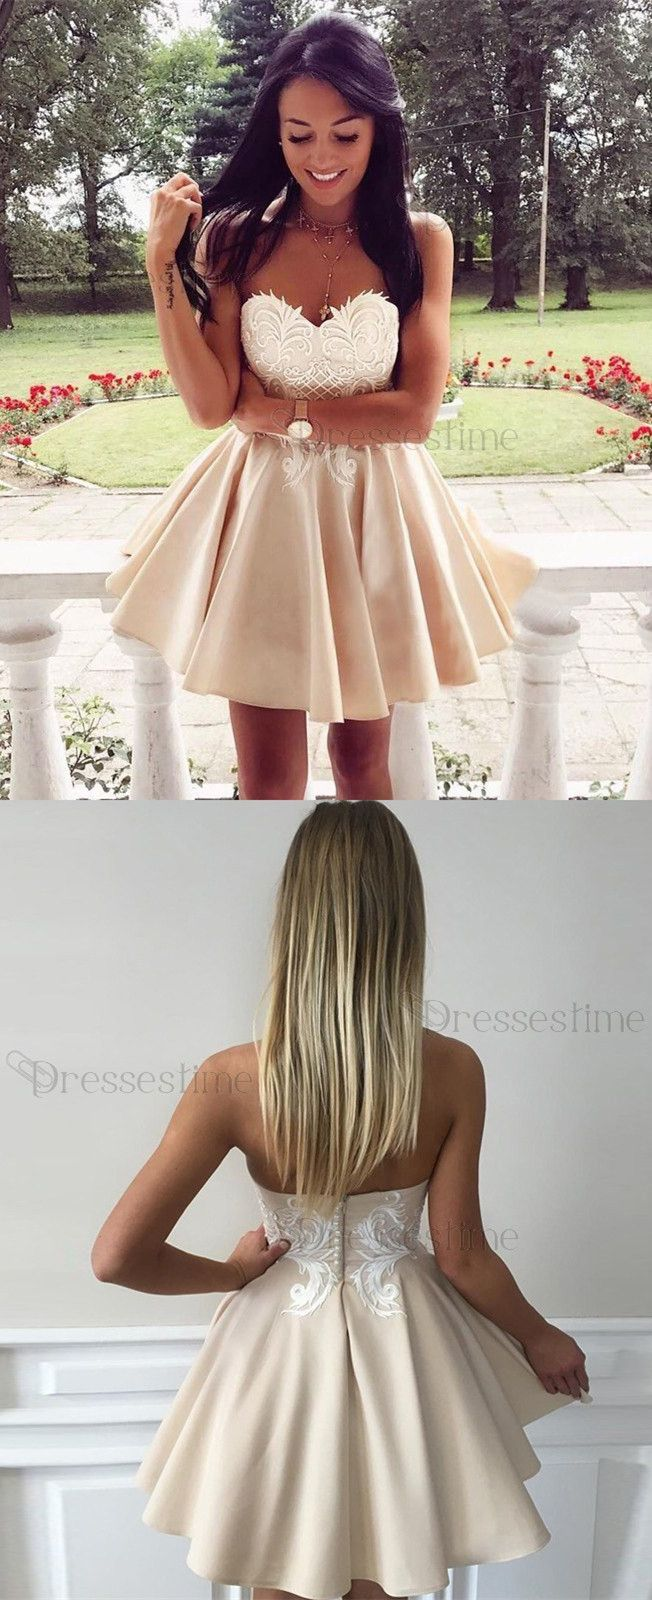 47a3831530f5 Cute sweetheart homecoming dresses, cheap a- line fashion dresses, chic  party gowns.